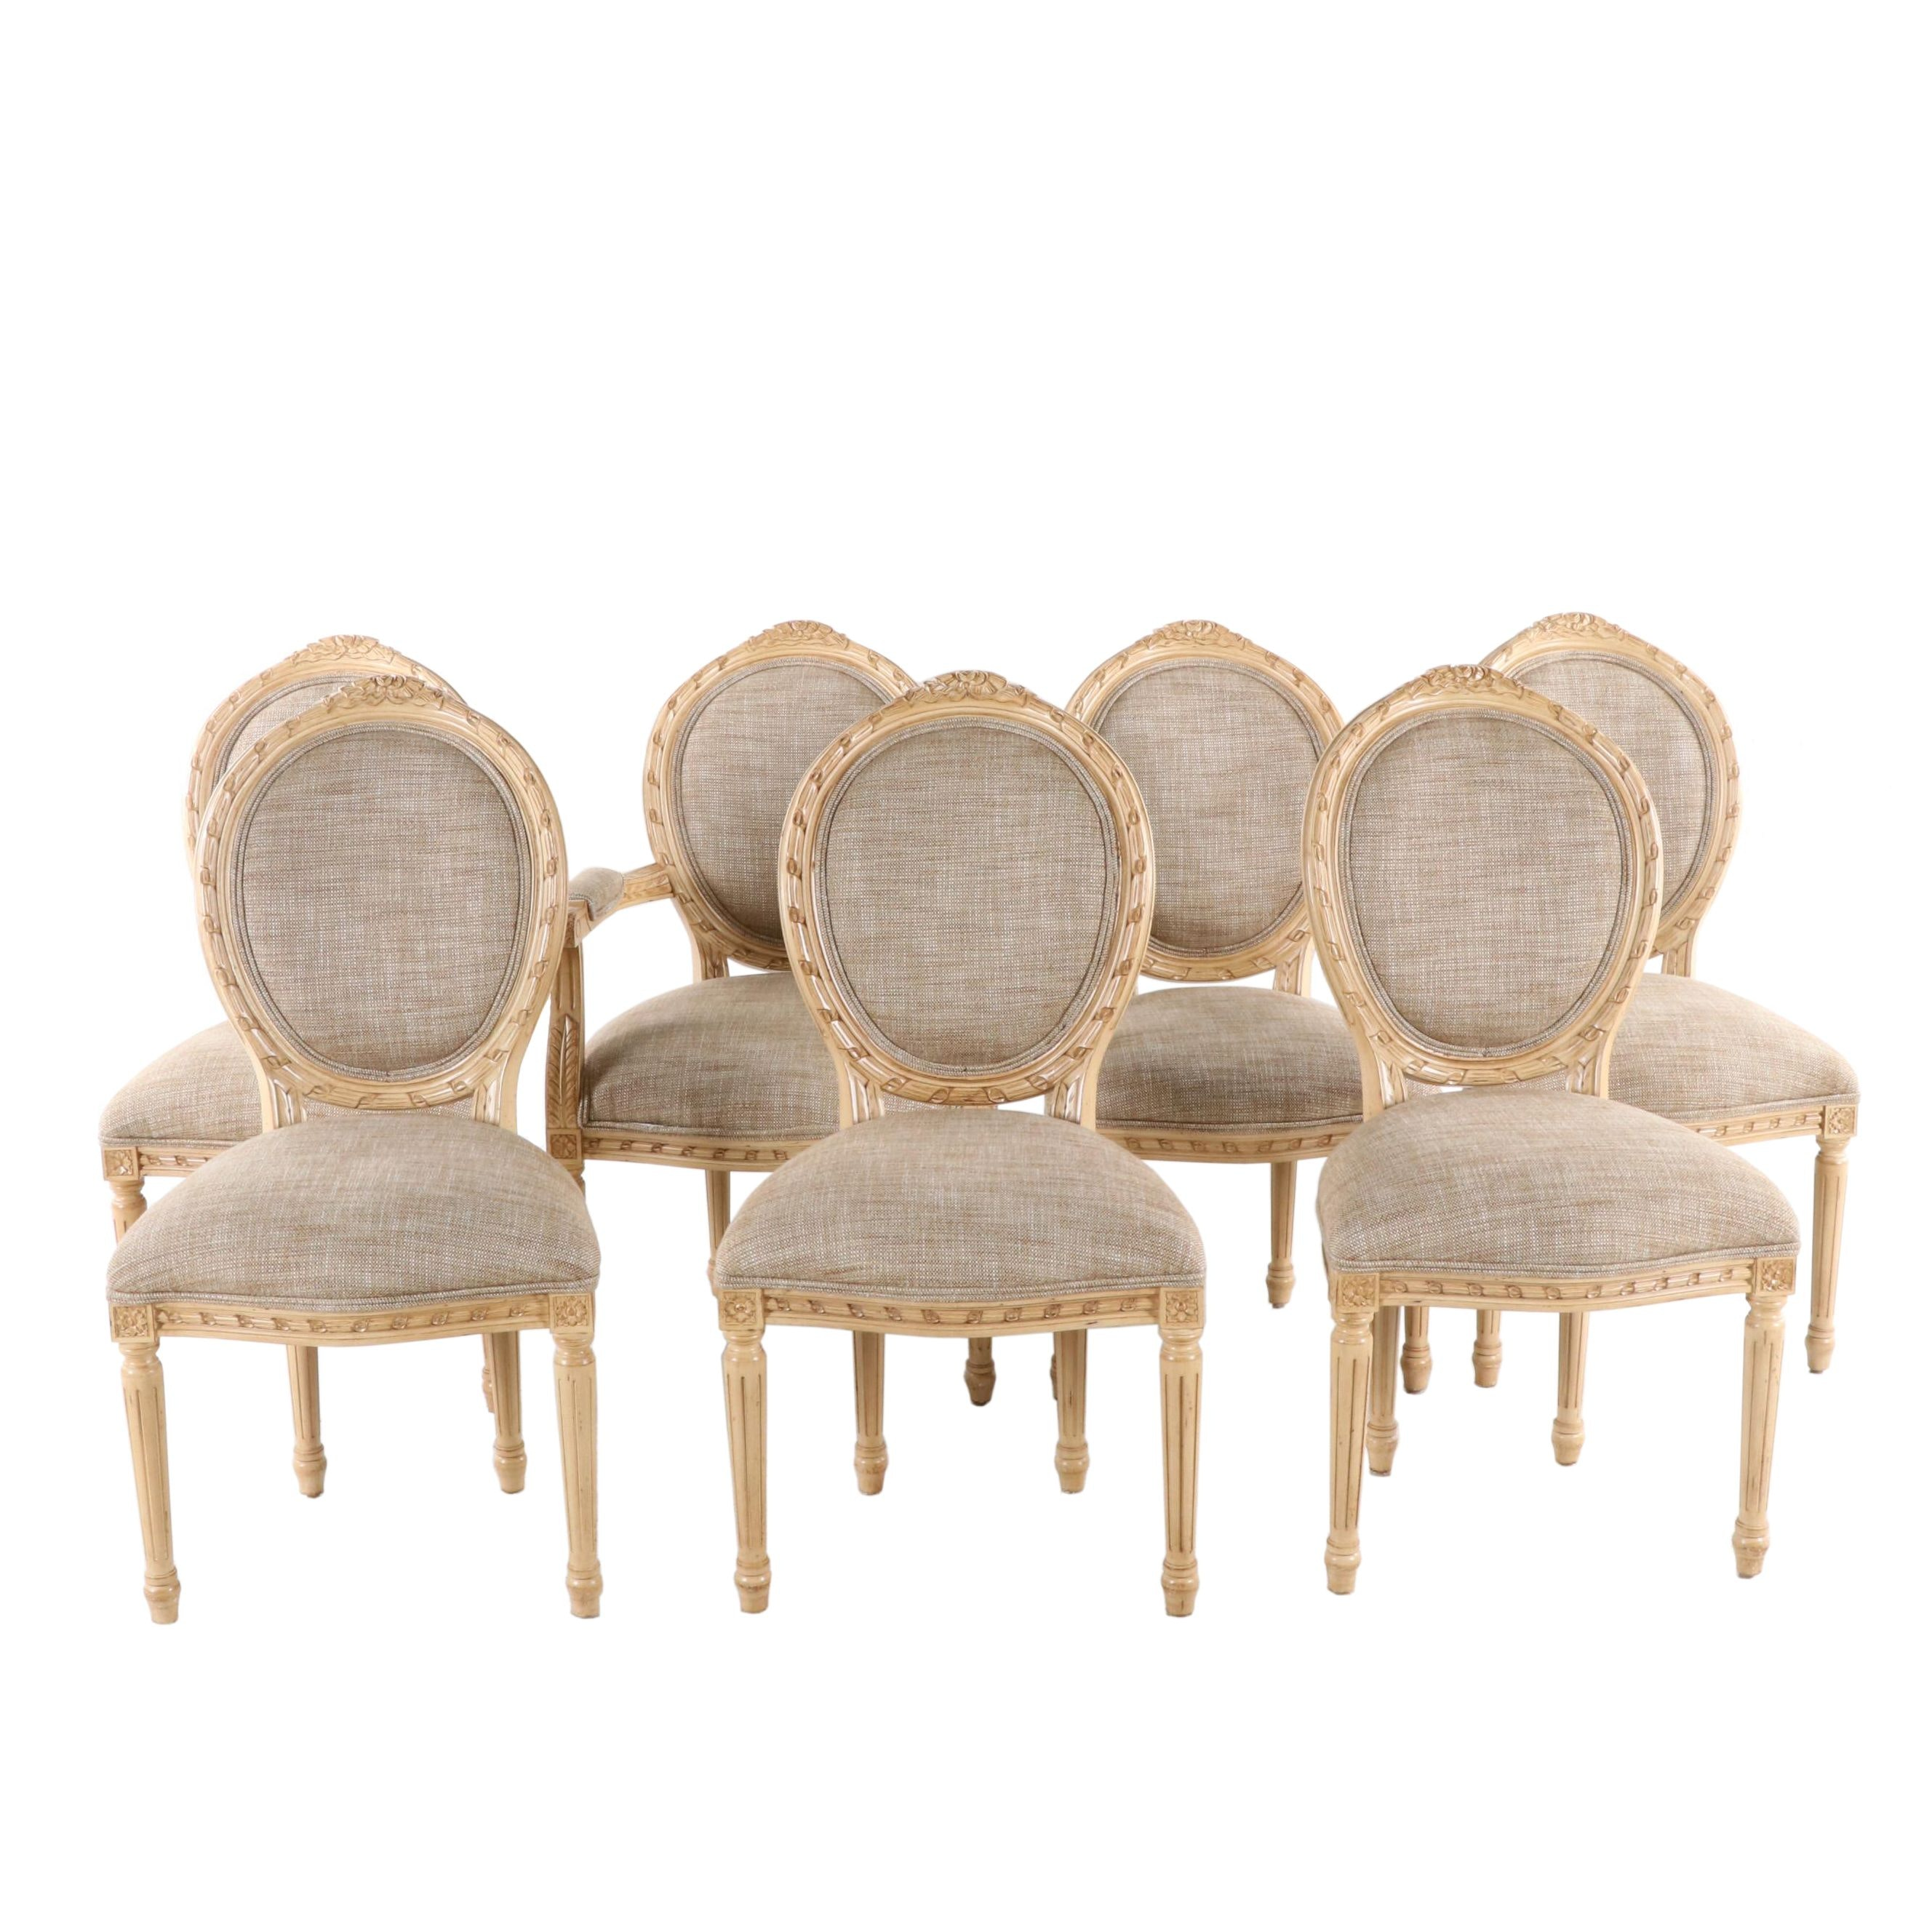 Seven Pama Furniture Louis XVI Style Painted Wooden Upholstered Dining Chairs